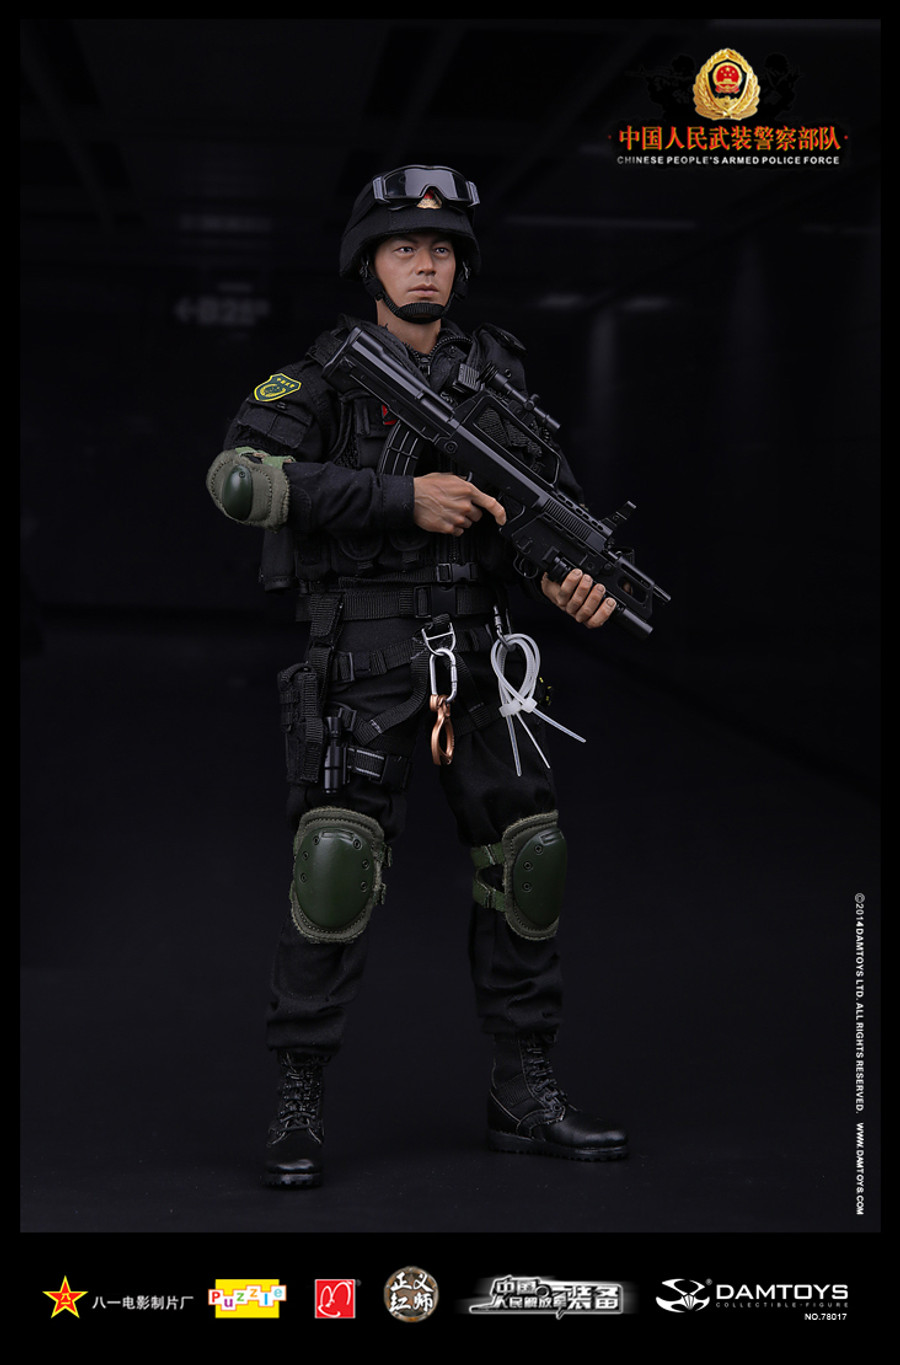 DAM - Chinese People's Armed Police Force - Anti-Terrorism Force